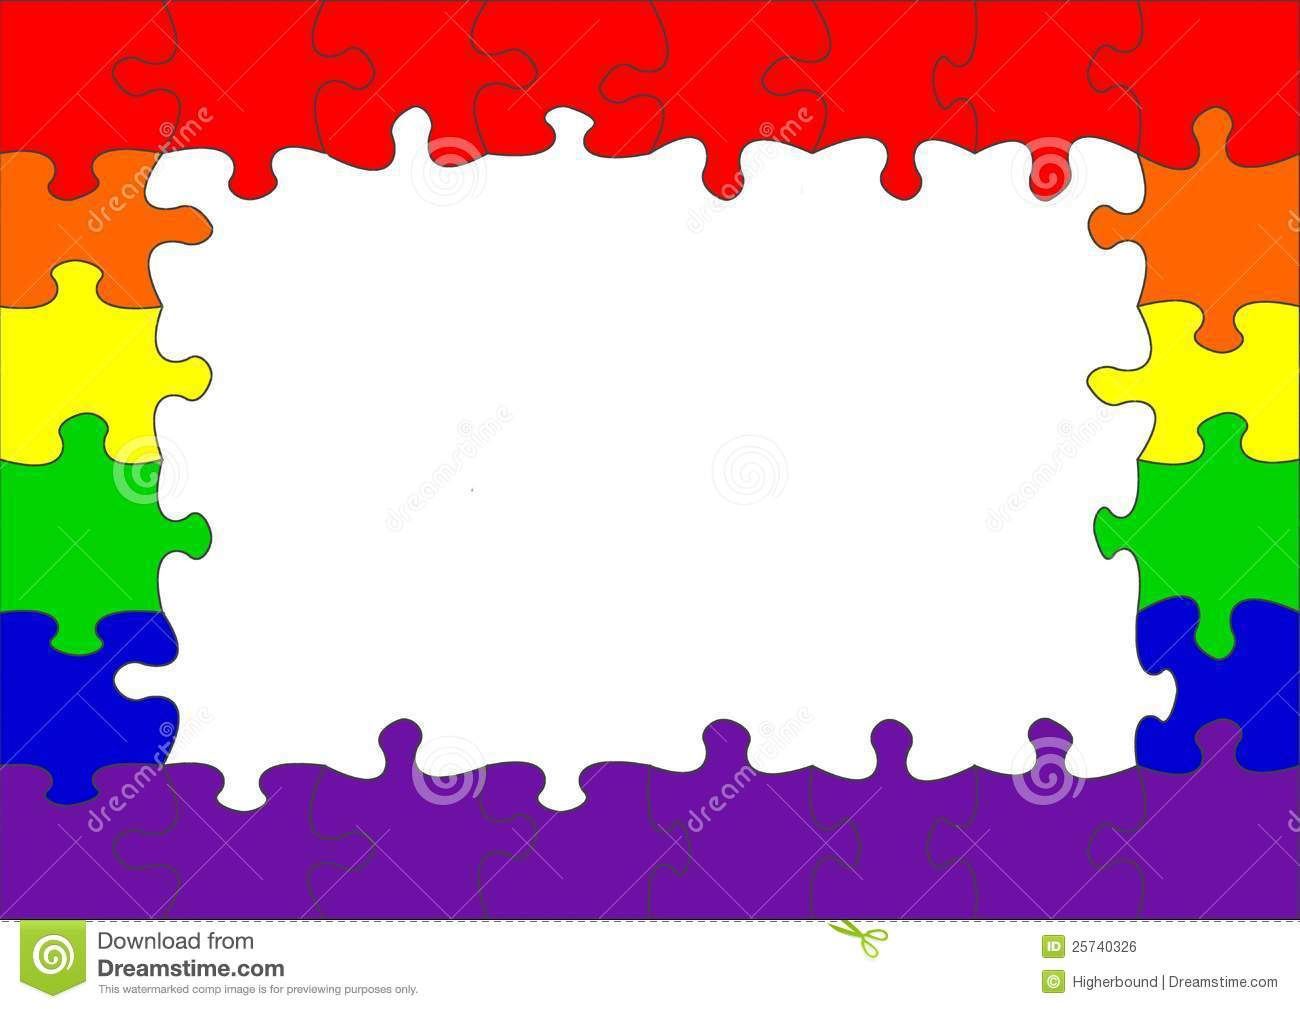 Puzzle border showing a rainbow flag, often association with the gay ... Al Pacino